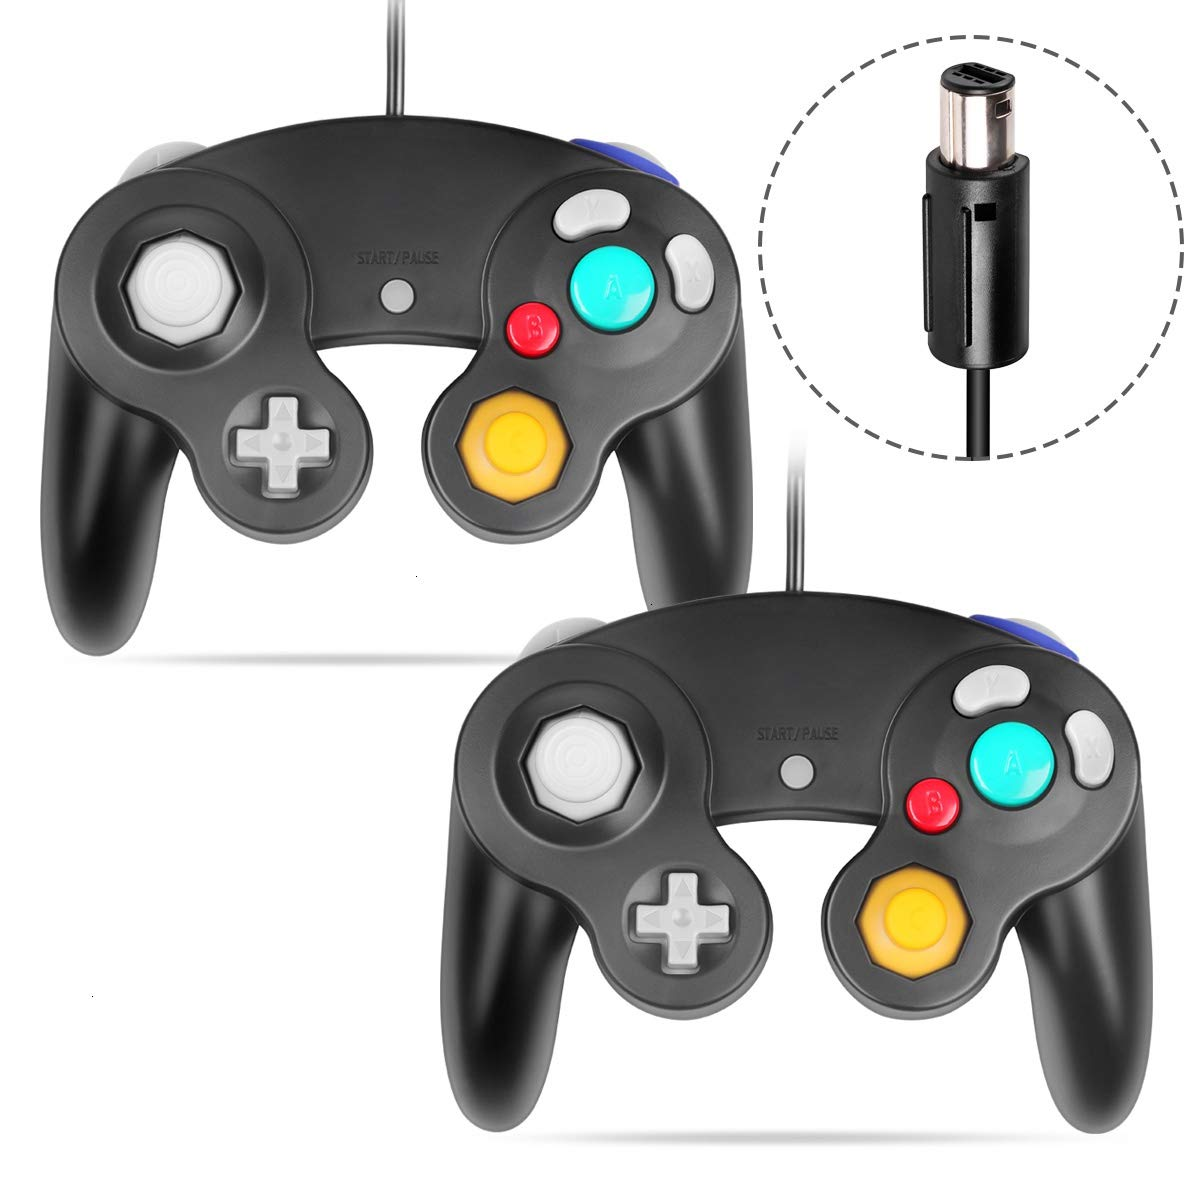 VOYEE Gamecube Controller - 2 Pack Classic Wired Controllers Compatible with Wii Nintendo Gamecube (Black)